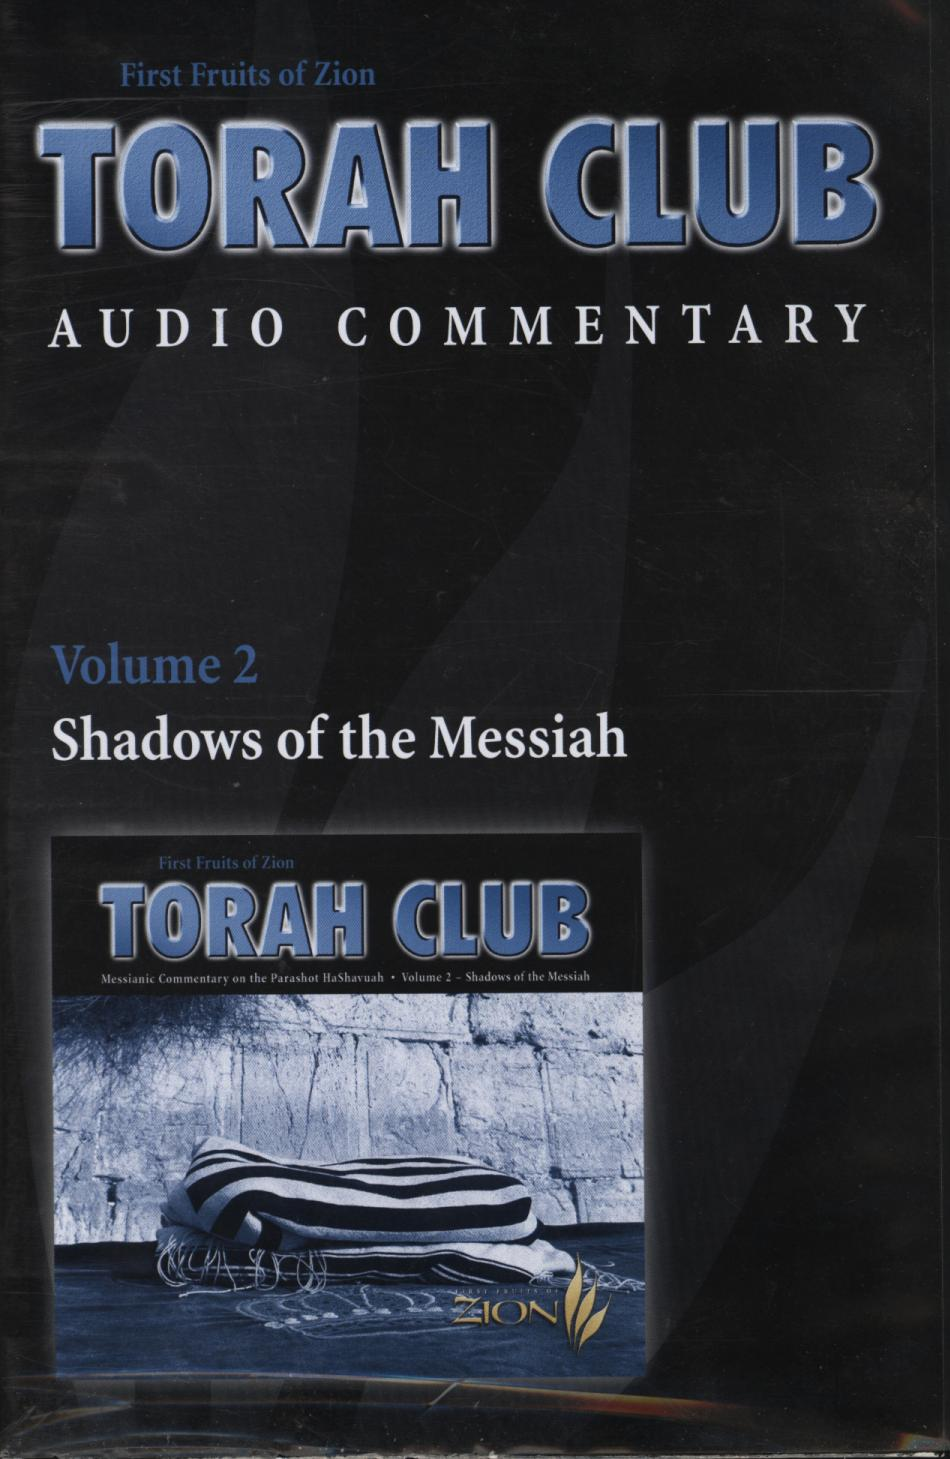 Image for First Fruits of Zion Torah Club Audip Commentary (Volume 2: Shadows of the Messiah)